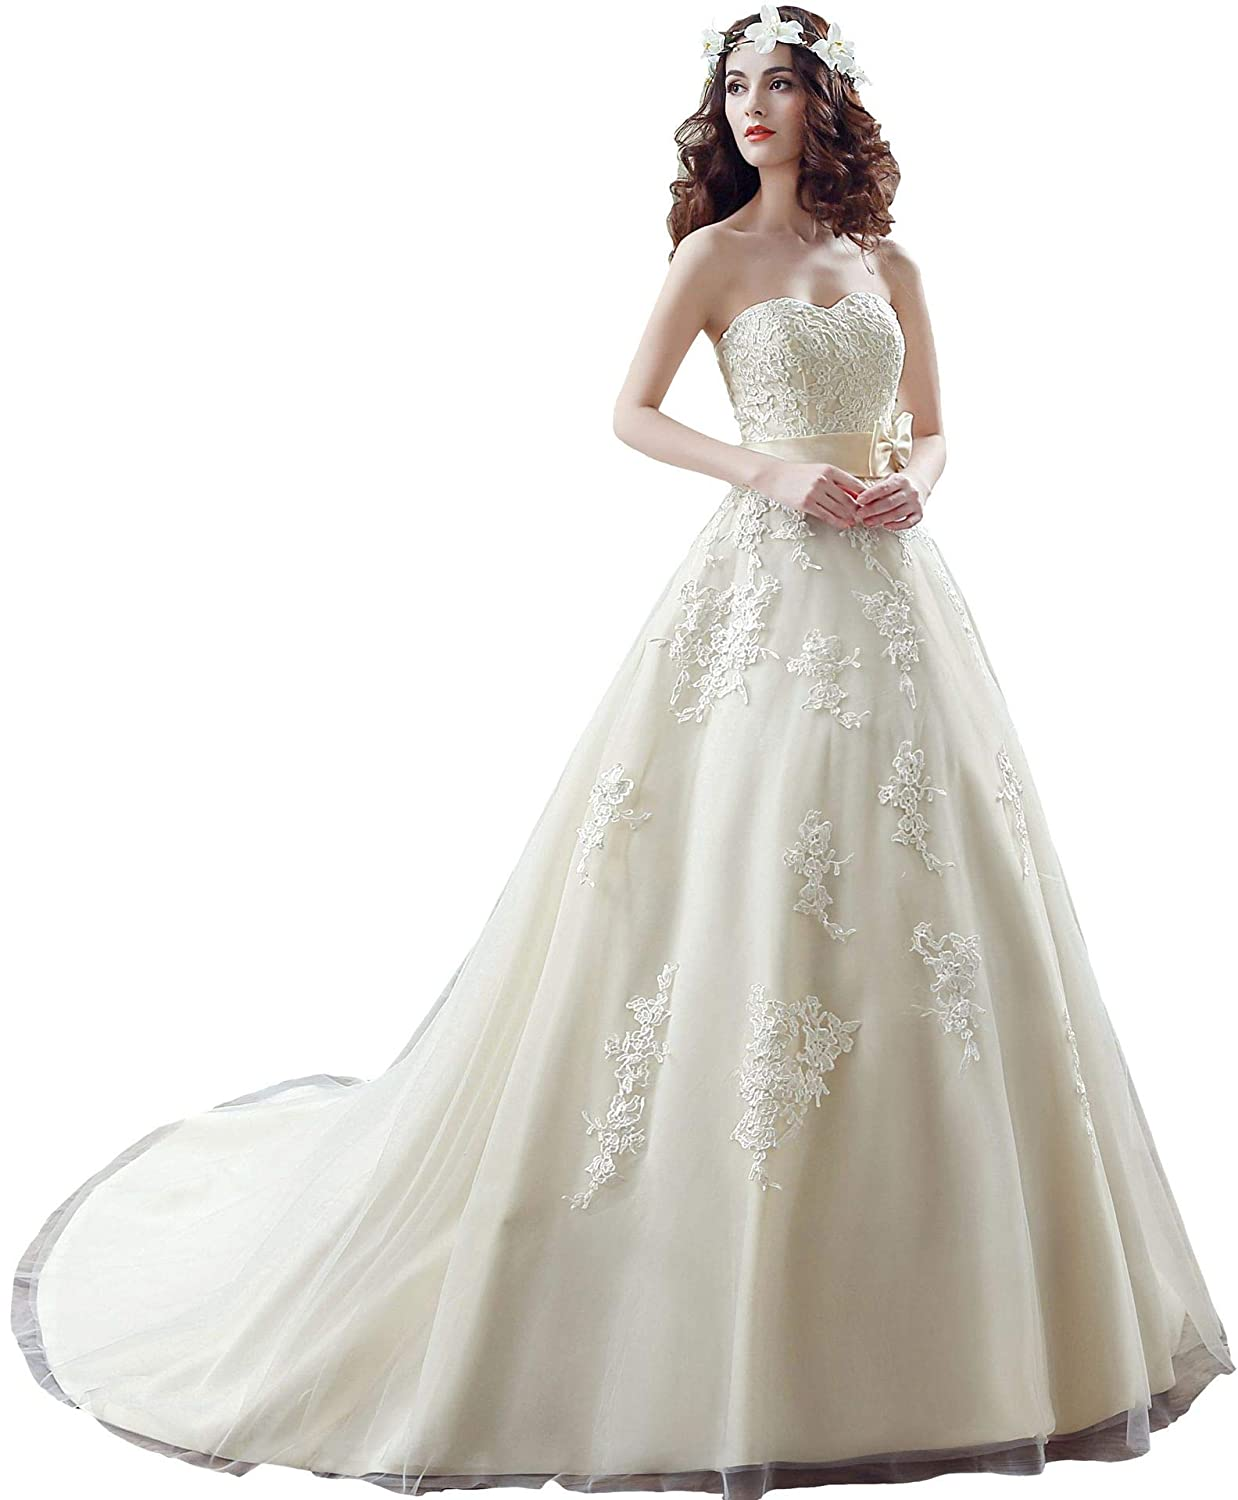 Besswedding Lace Wedding Dresses 2019 Long Ball Gown Prom Dress With